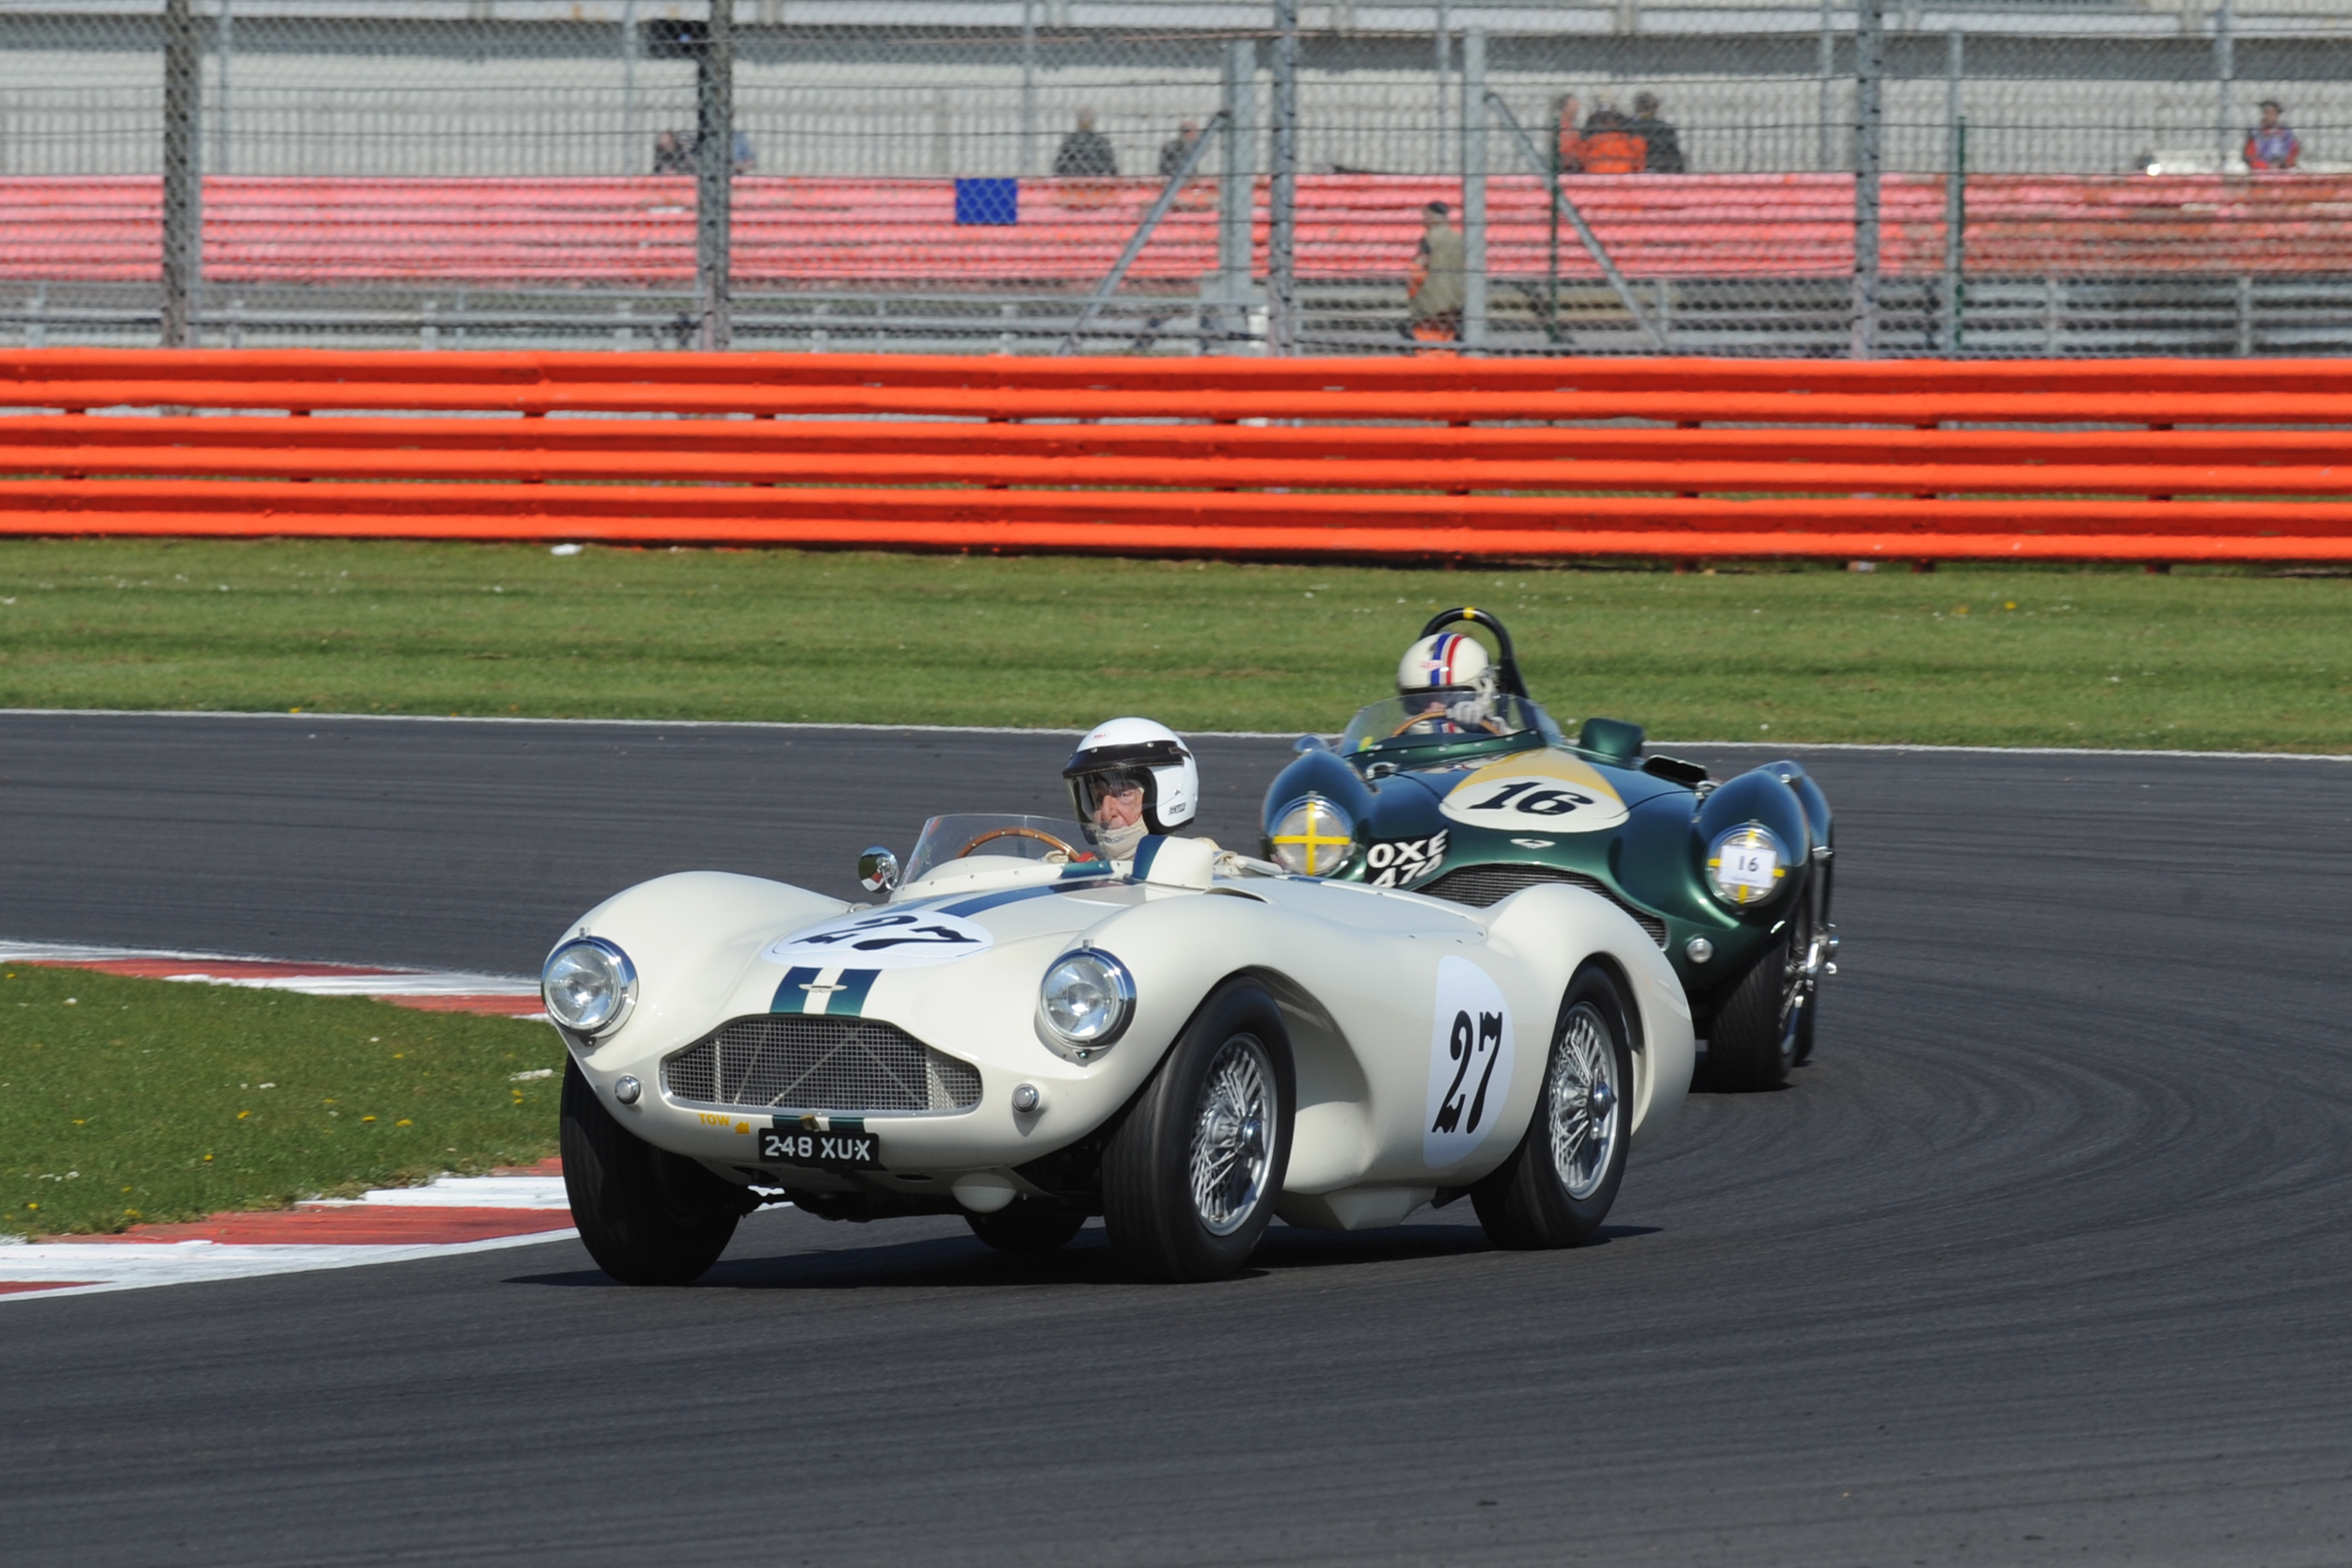 The Aston martin DB3s - I say it every year but surely one of the finest looking sports racing cars from any era. David Bennett and Steve Boultbee-Brookes pilot theirs - what a splendid sight                         Photo - Jeff Bloxham